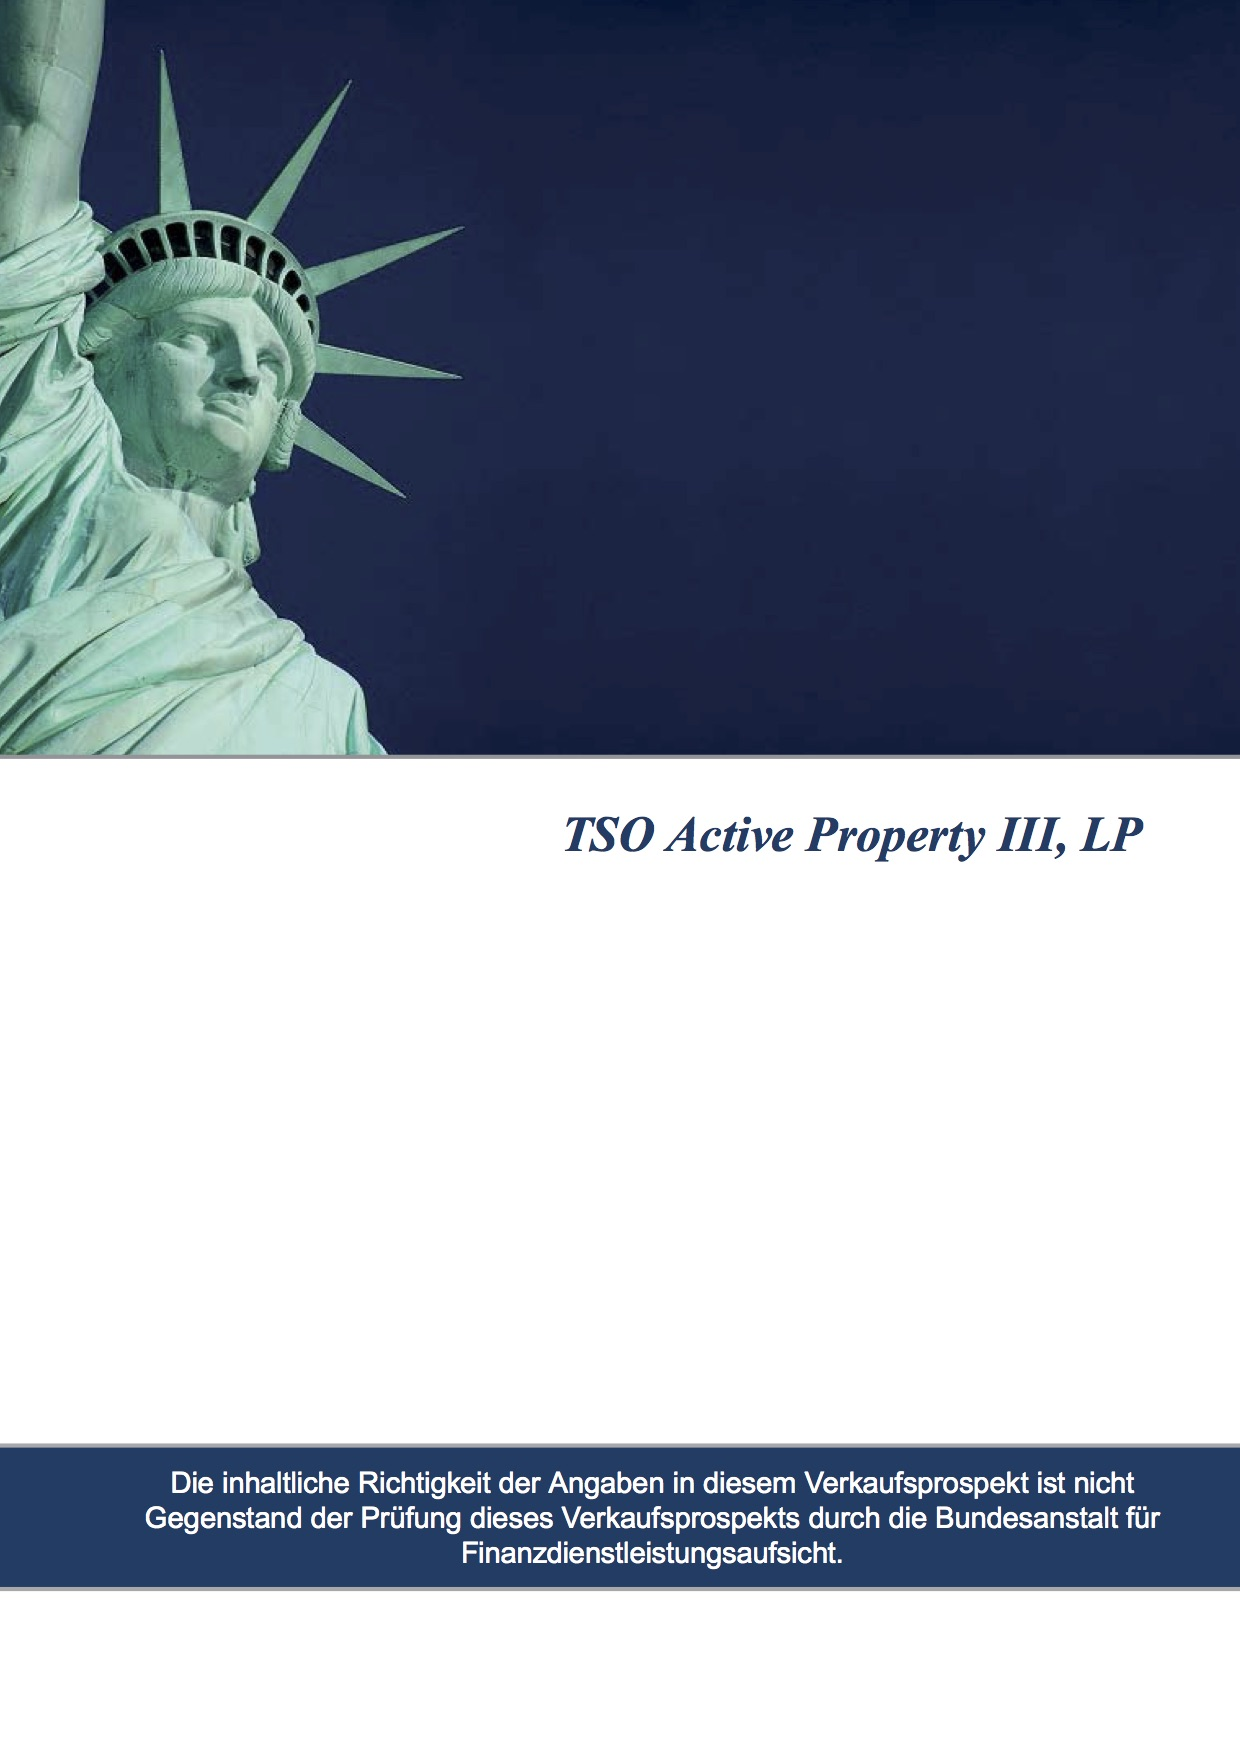 TSO Active Property III